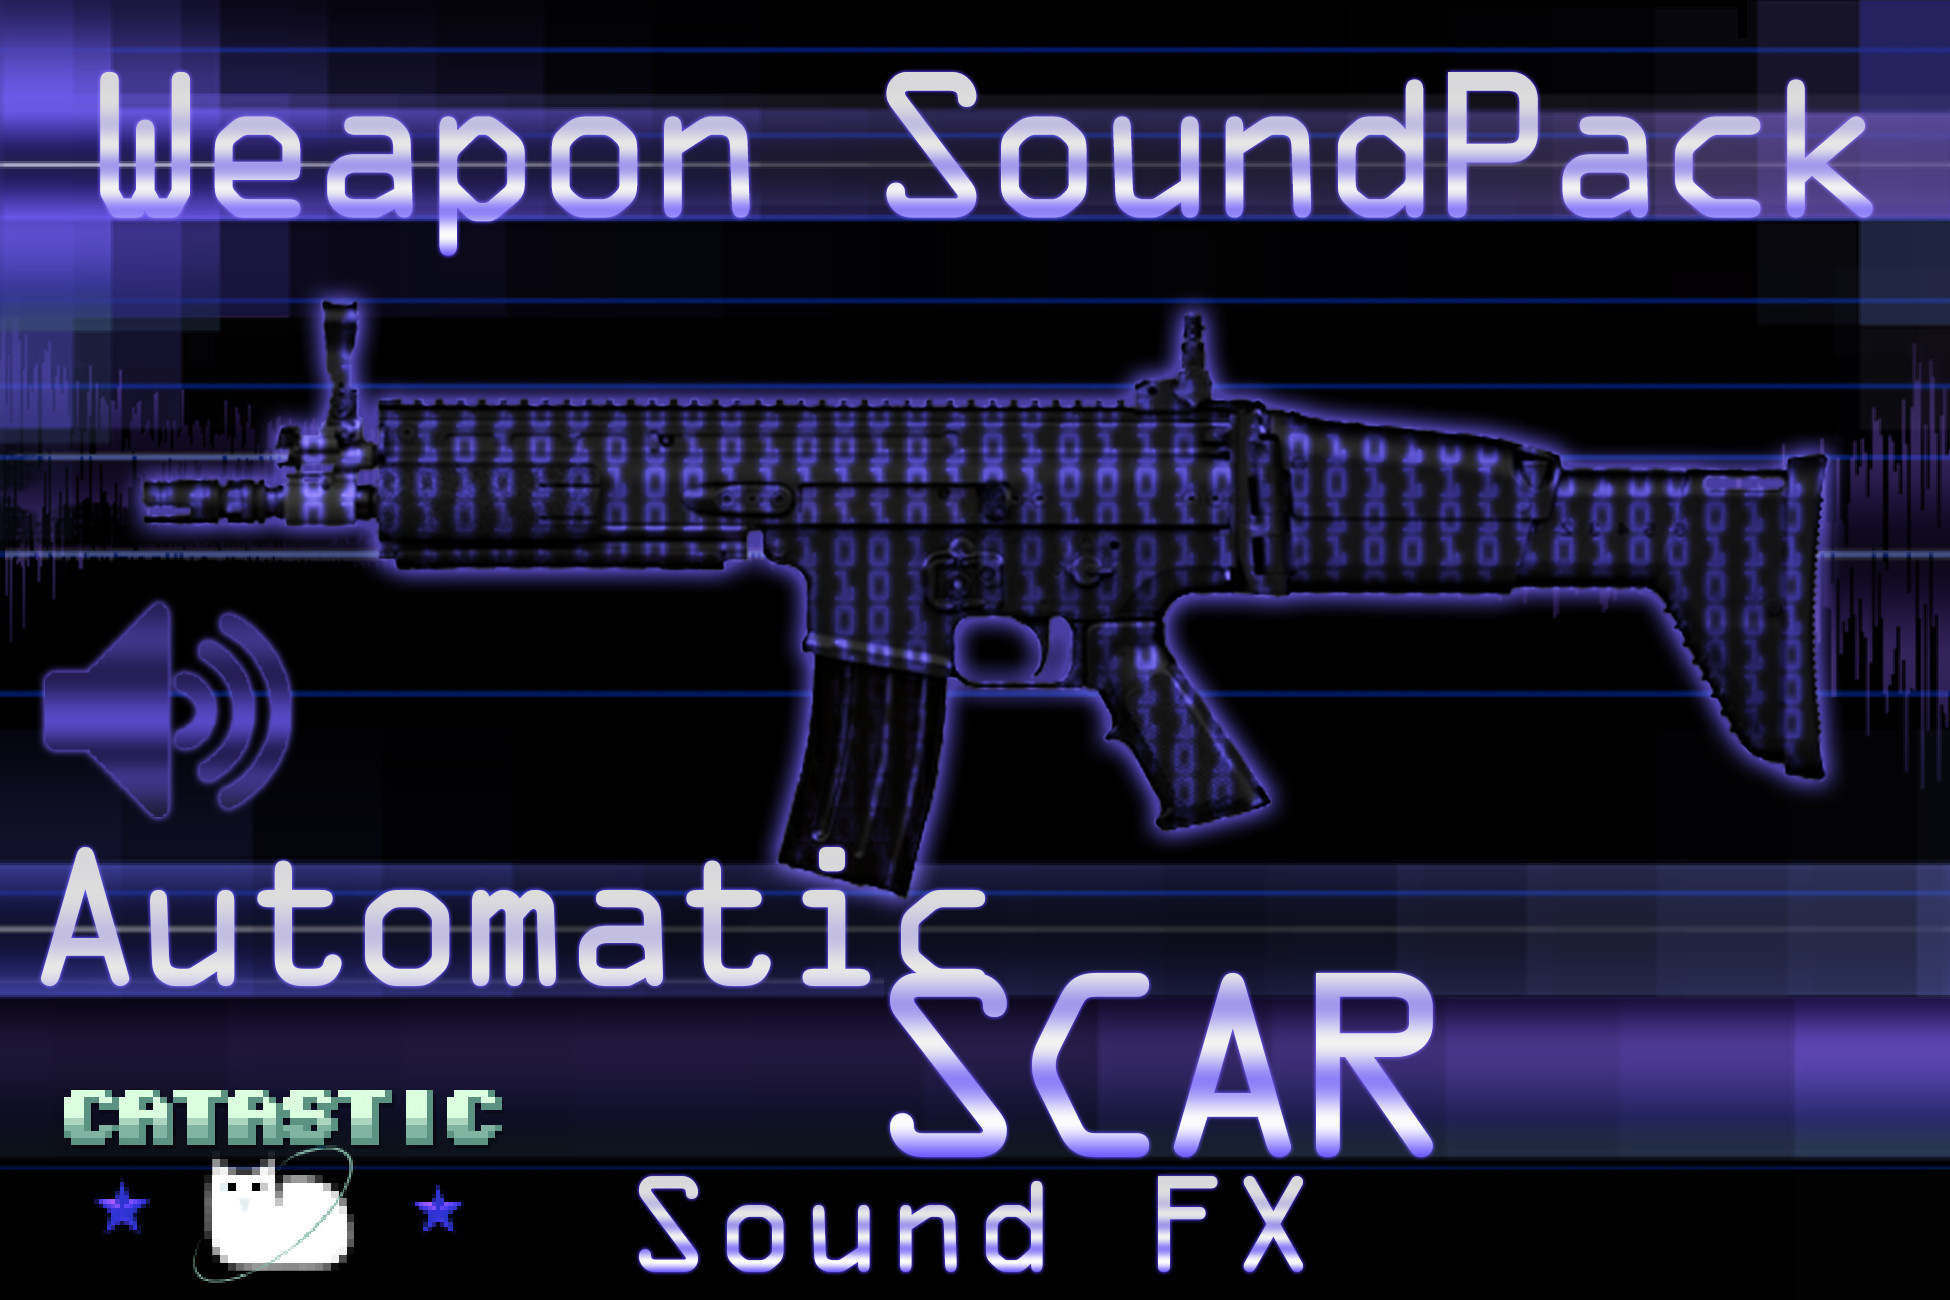 Weapon Sound Pack - Automatic Rifle: SCAR